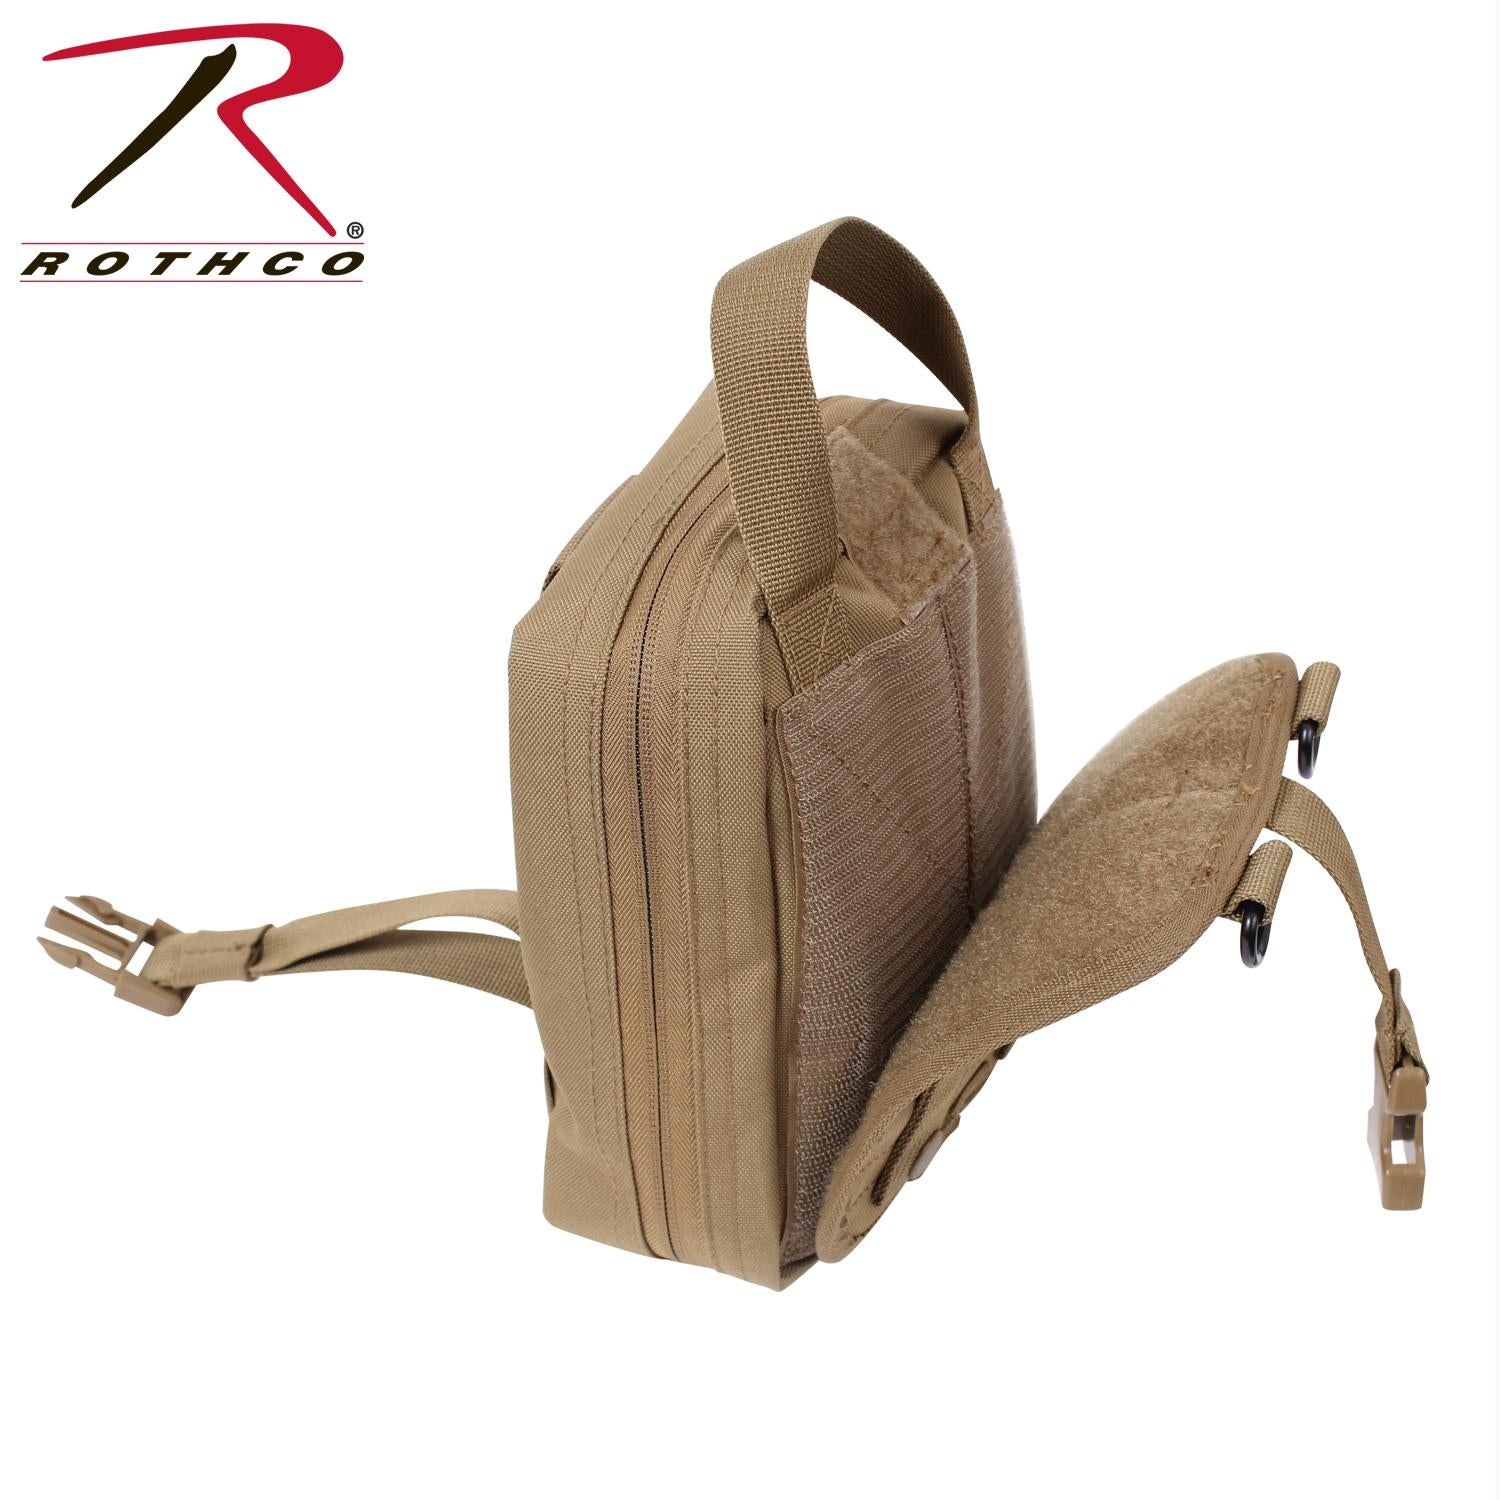 Rothco Tactical Breakaway Pouch - Coyote Brown